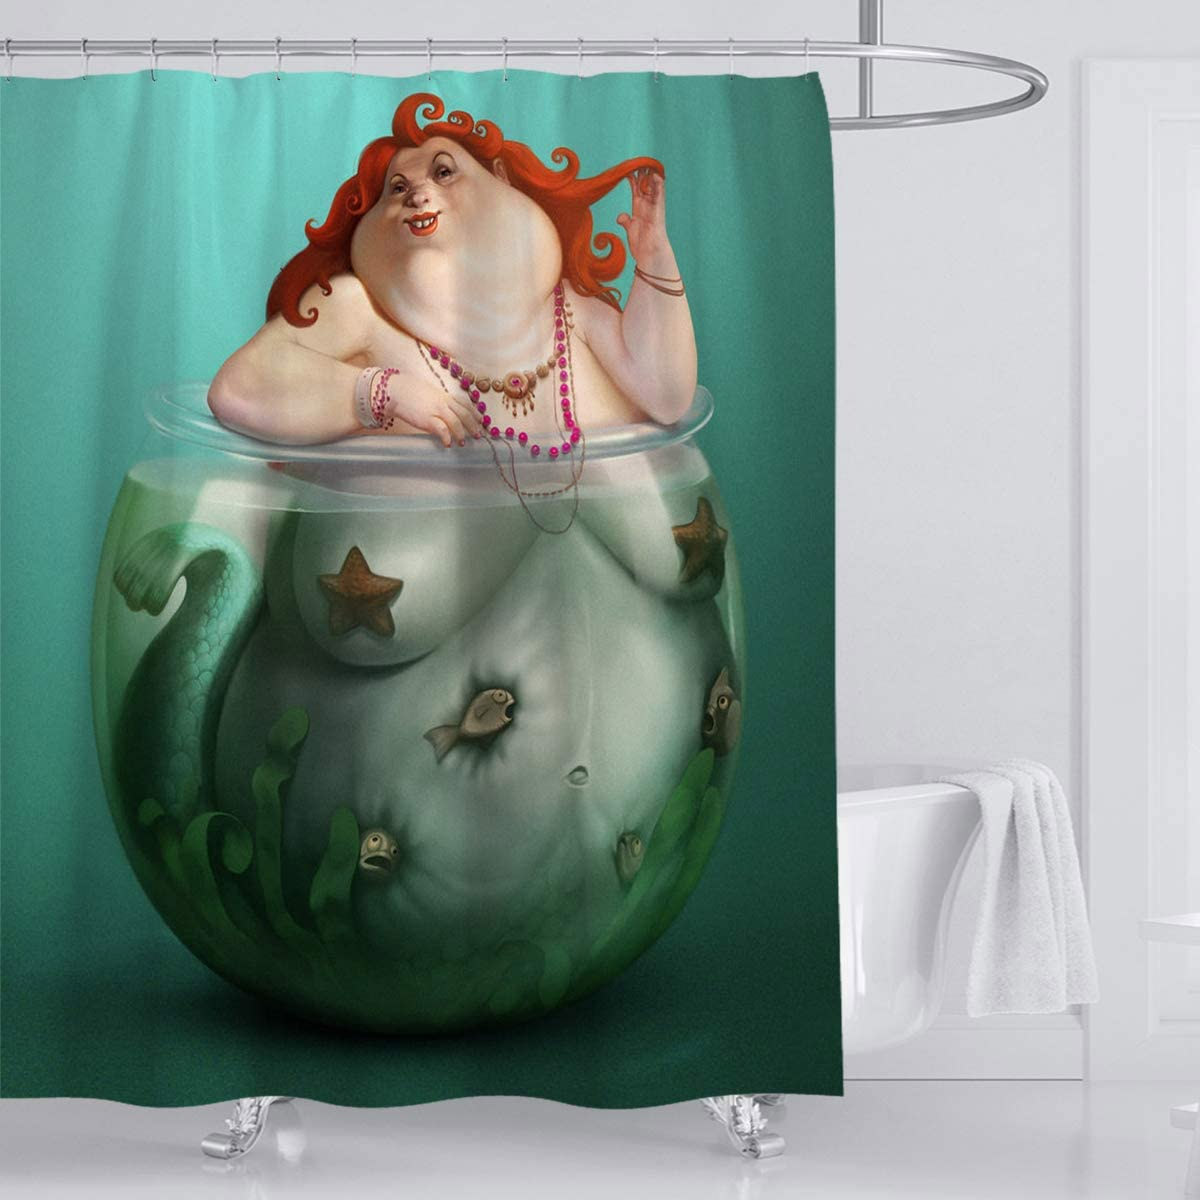 The Big Mermaid Shower Curtain - Fat mermaid funny shower curtain